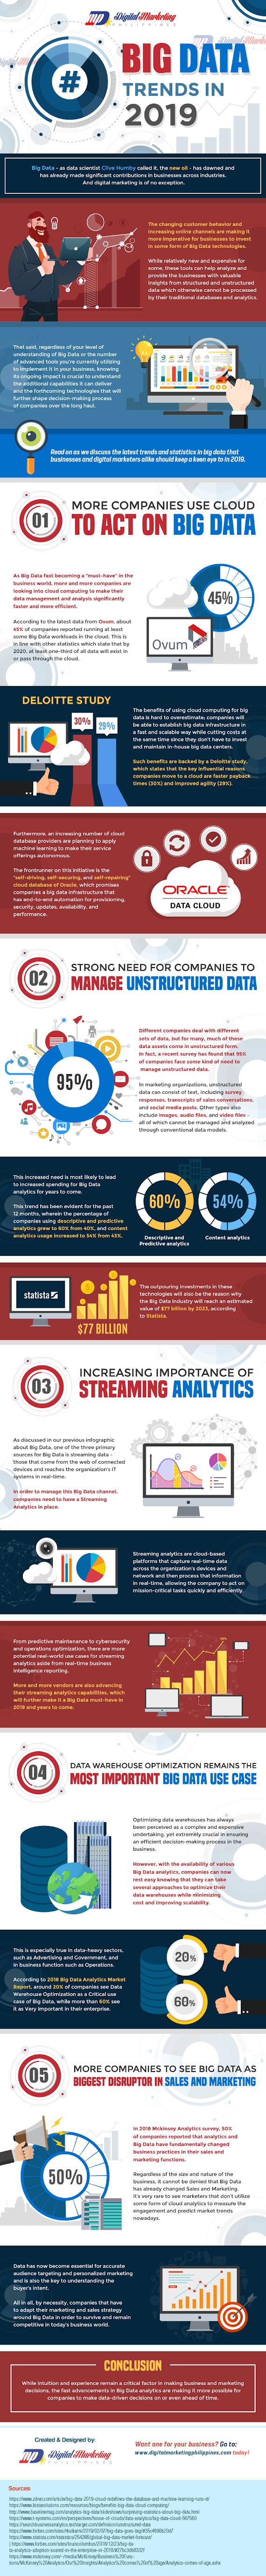 Big Data Trends in 2019 #infographic